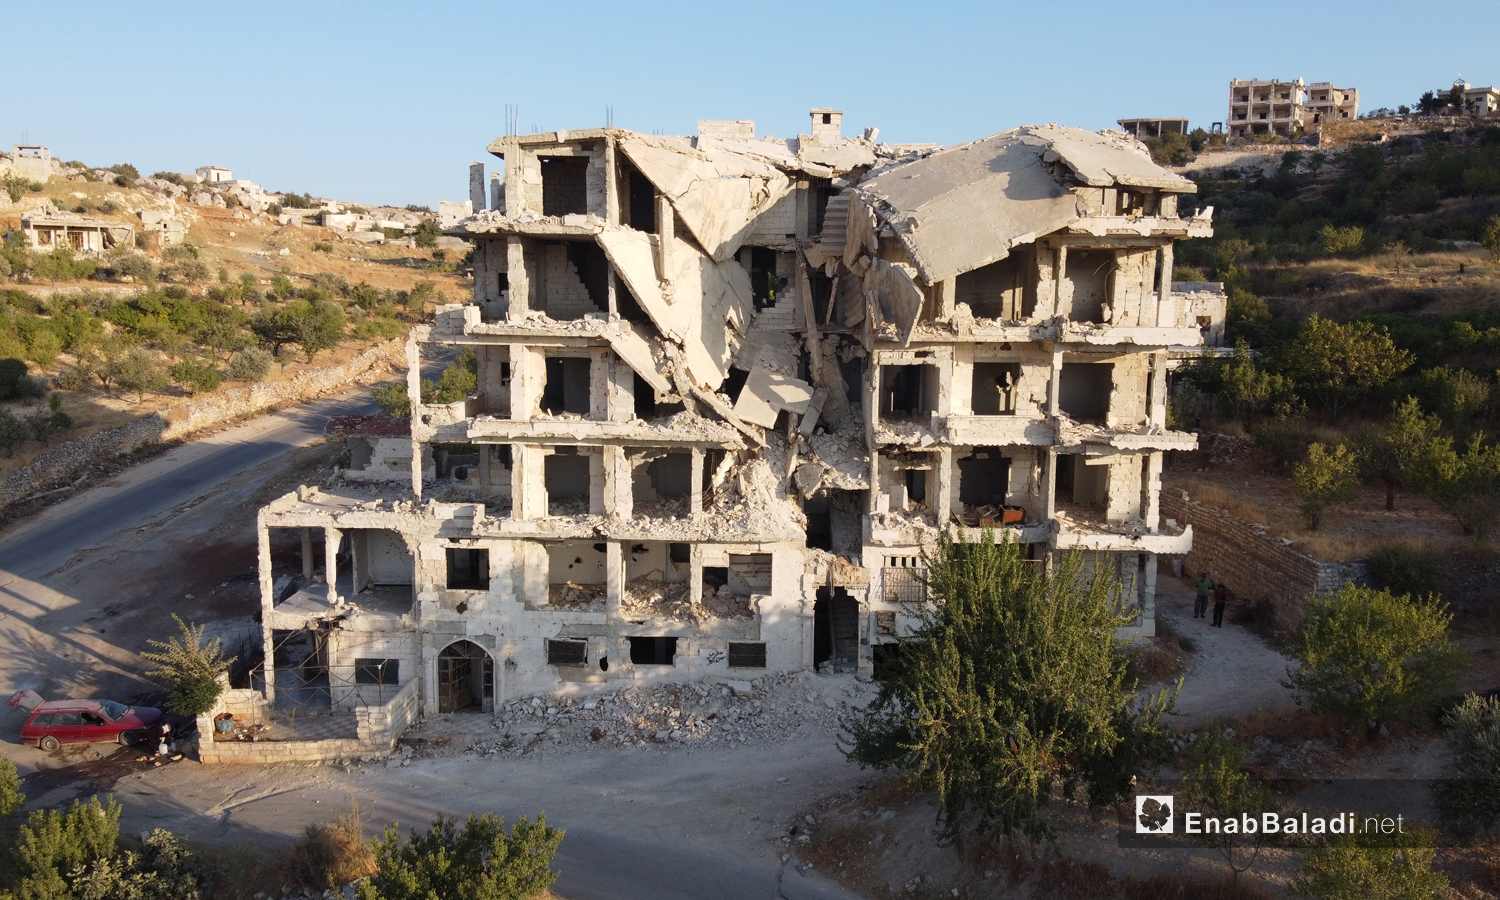 A destroyed building as a result of the bombing in the city of Ariha in the southern countryside of Idlib - 23 September 2020 (Enab Baladi / Yousef Ghuraibi)